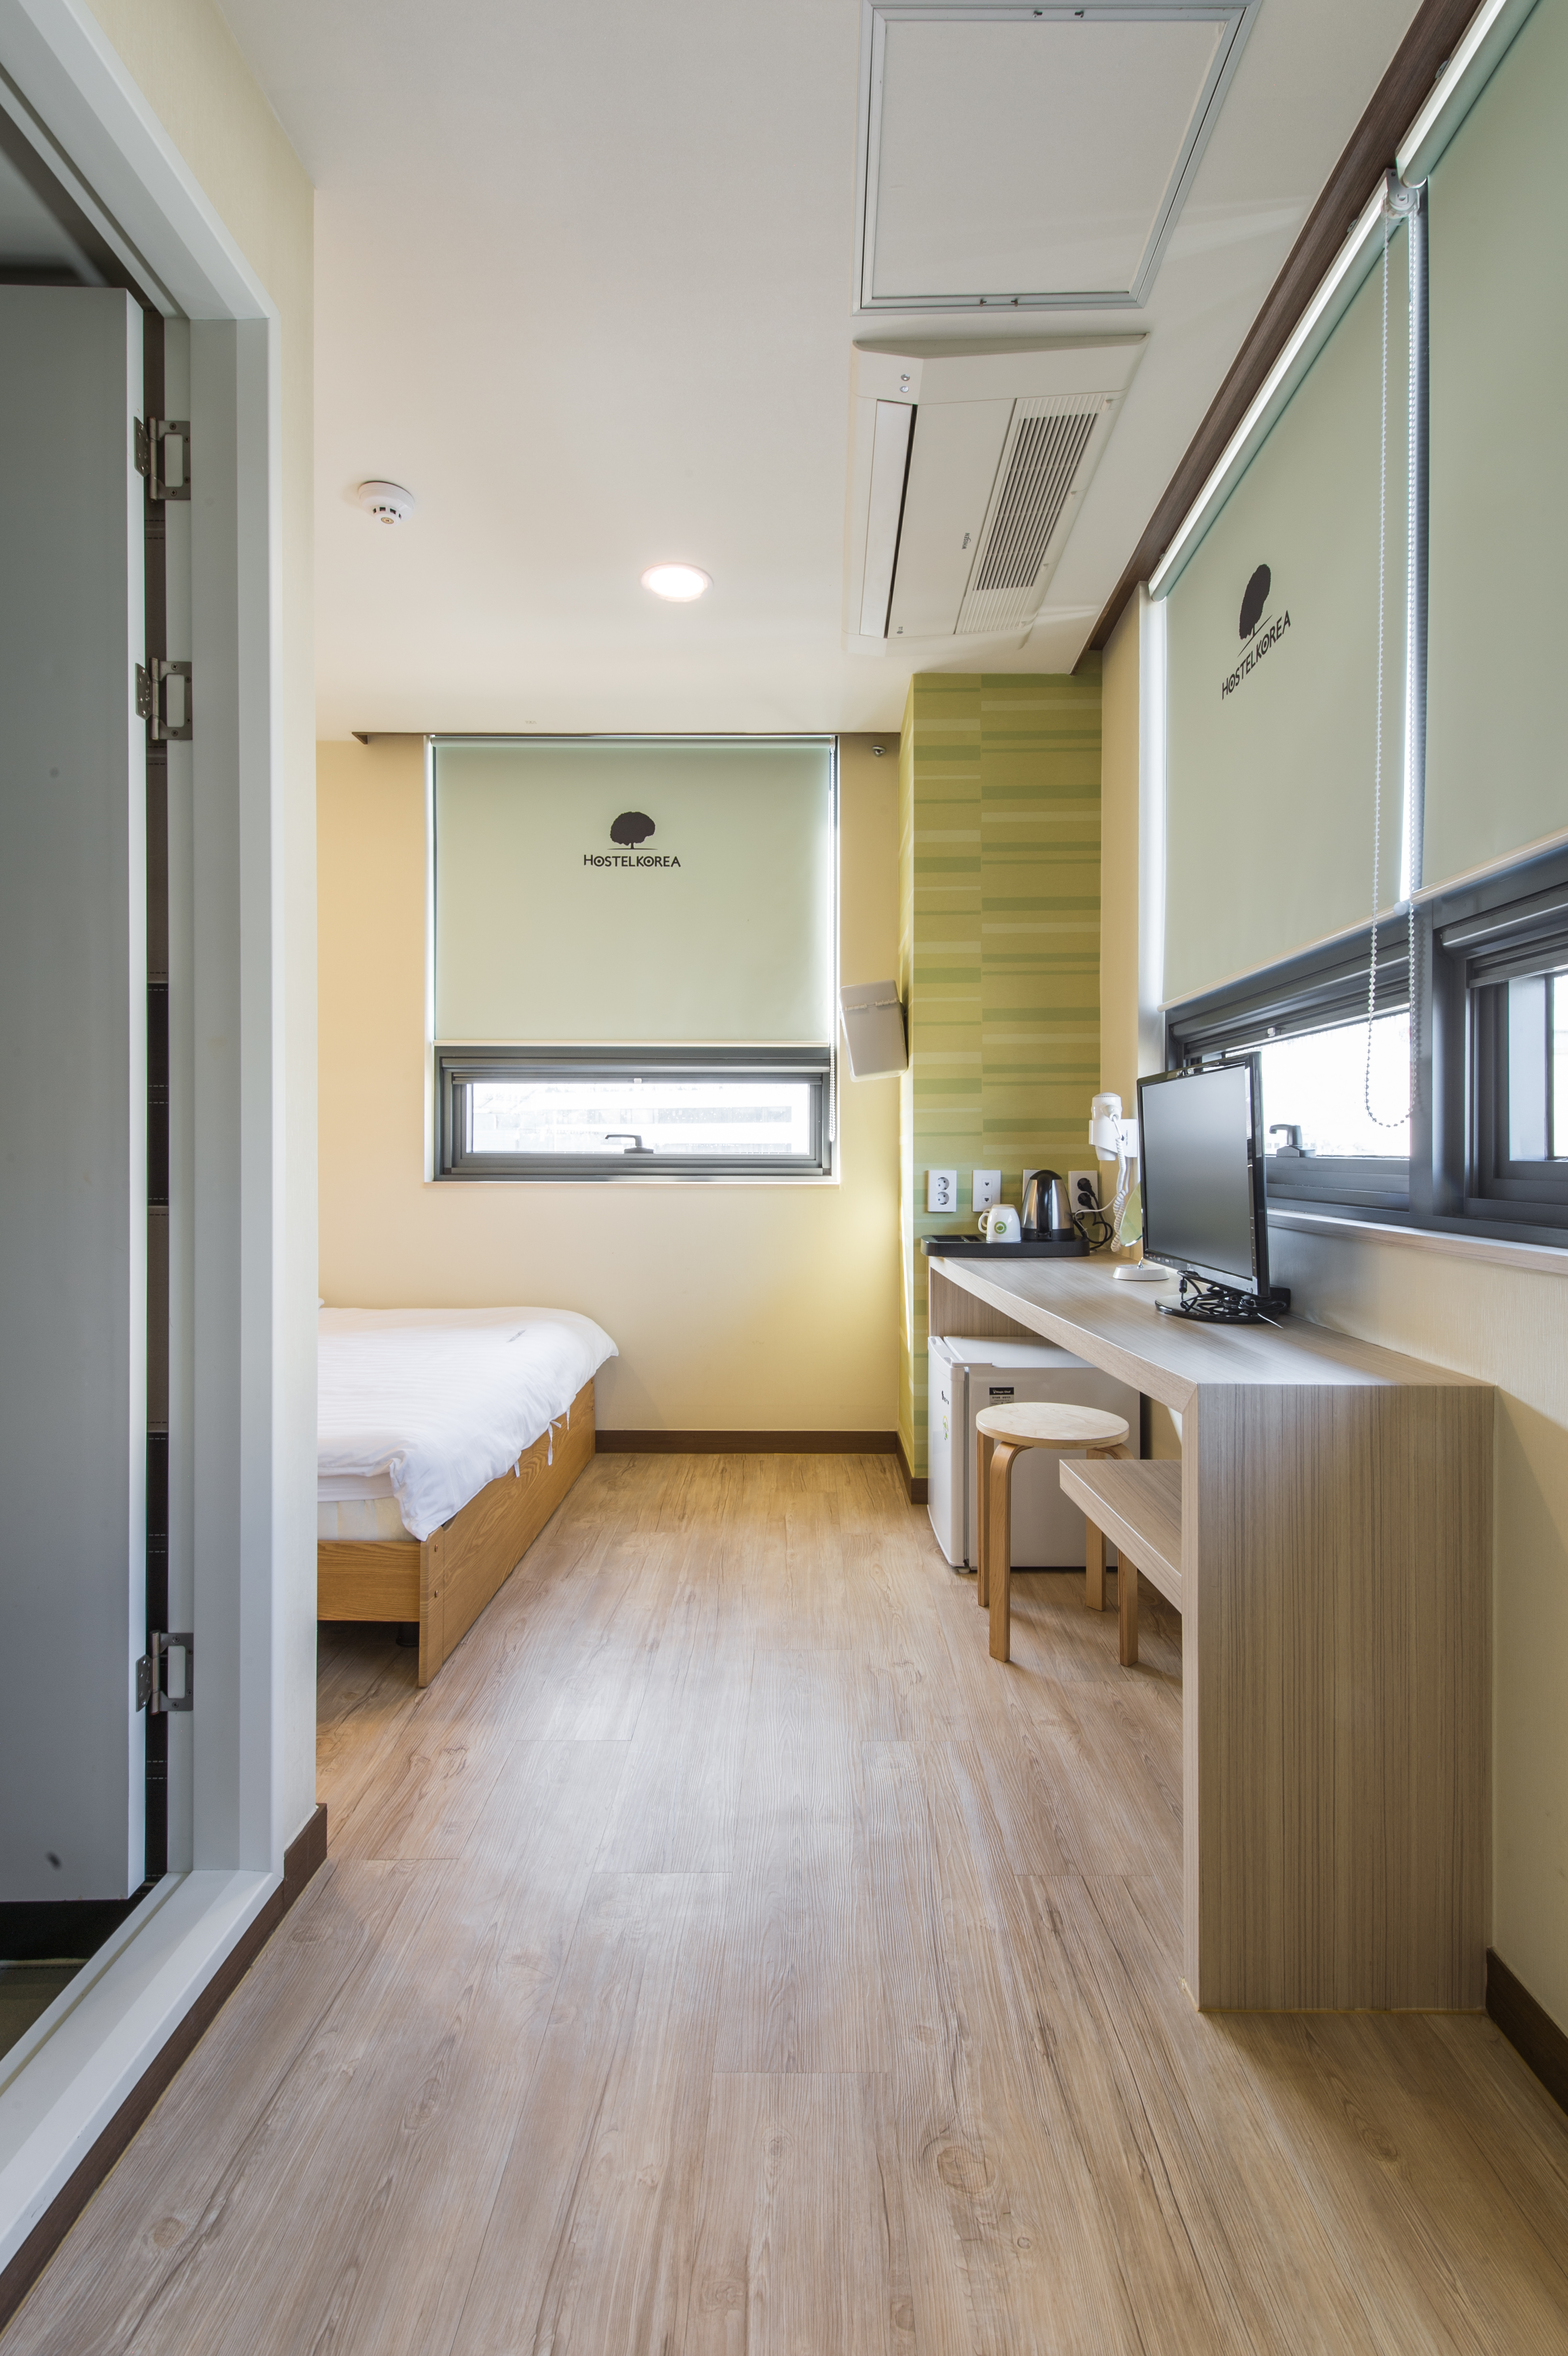 Single B / Double Room